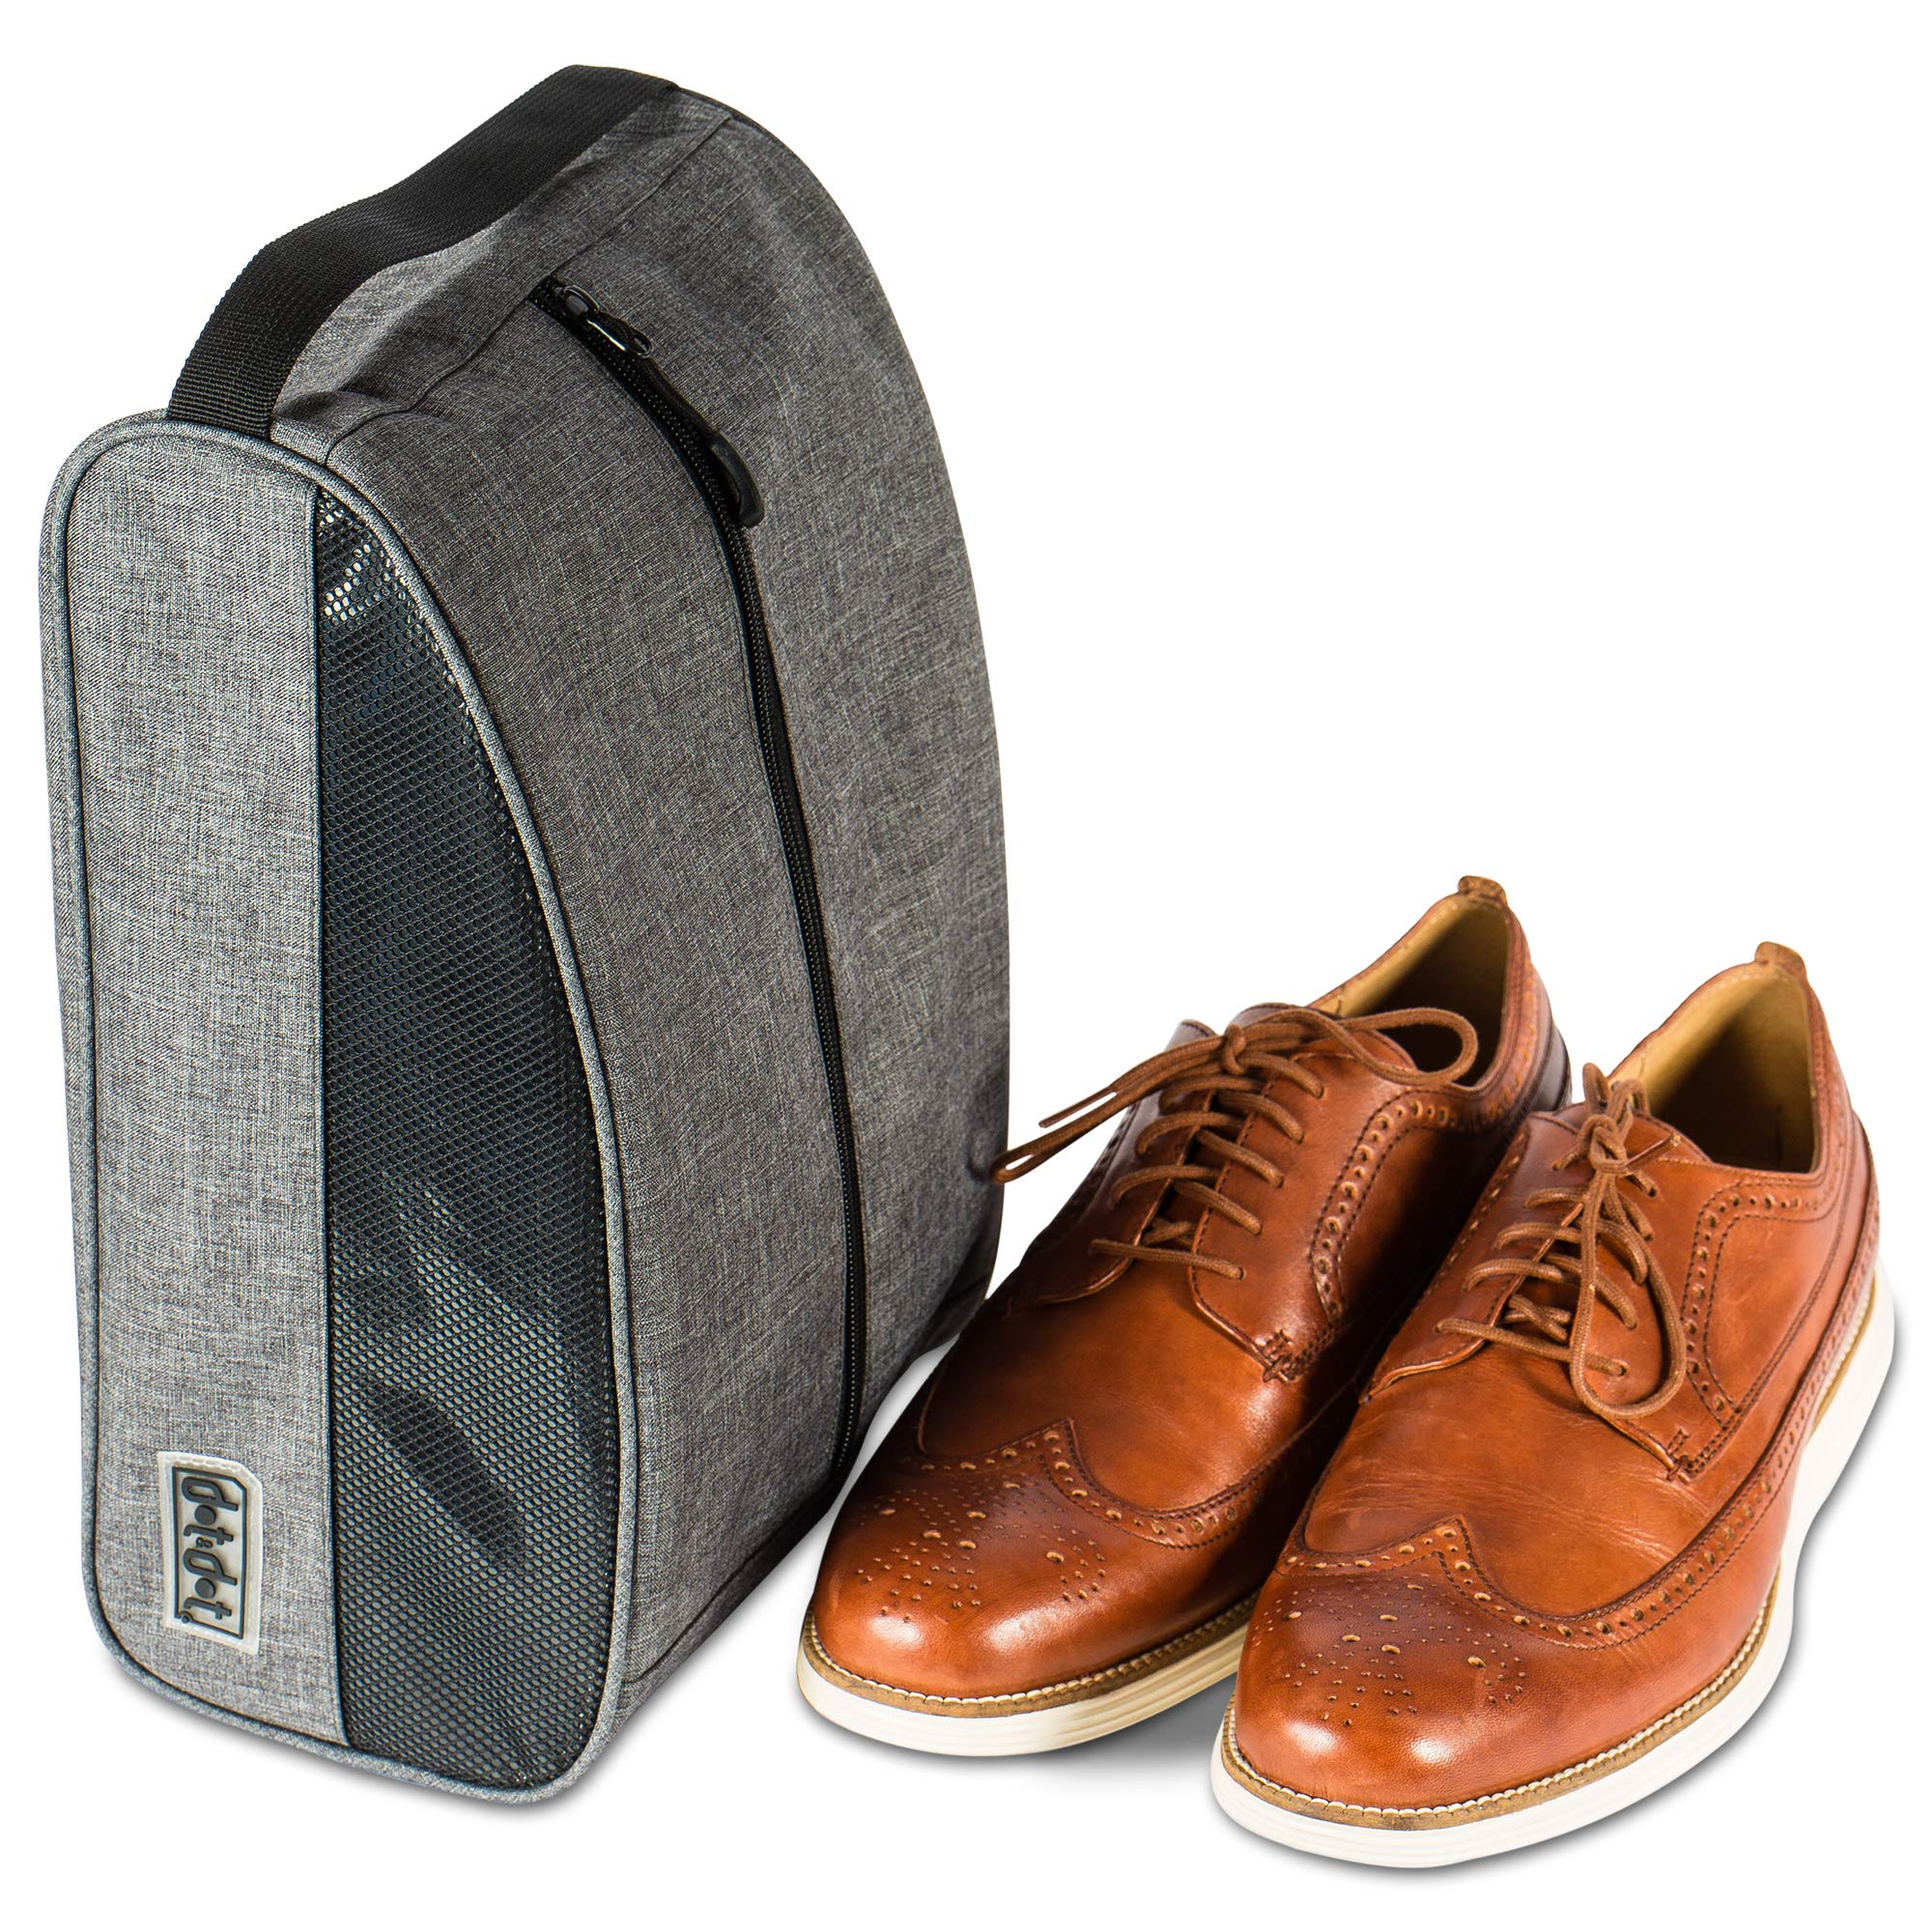 Travel Shoe Bag by Dot&Dot - Premium Packing and Storage Solution for Shoes with Mesh and Handle to Conveniently Organize and Transport Your Shoes While Traveling (Gray, One_Size) by Dot&Dot